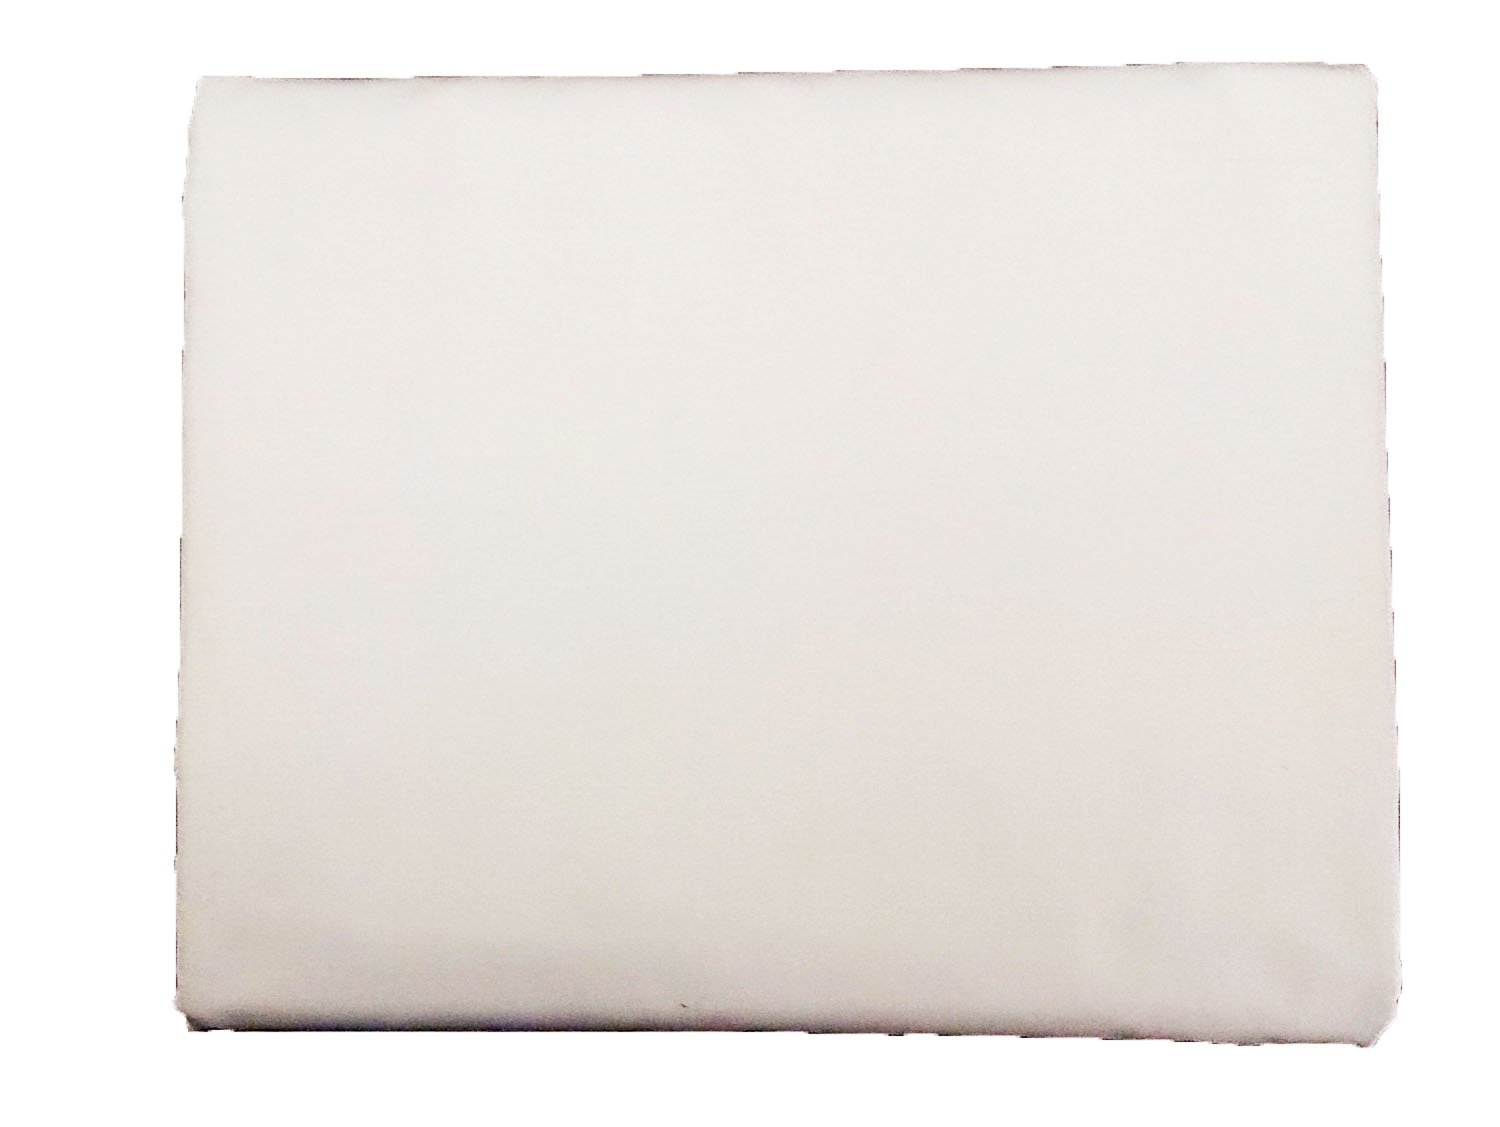 Solid White, Twin XL Size Flat Bed Sheet (66x104), 1-Piece, 200 Thread Count Poly-Cotton Blend, Luxurious Hotel Quality, Great For College Dorms, Elegant, Breathable, and Durable By- Pacific Linens by Pacific Linens (Image #2)